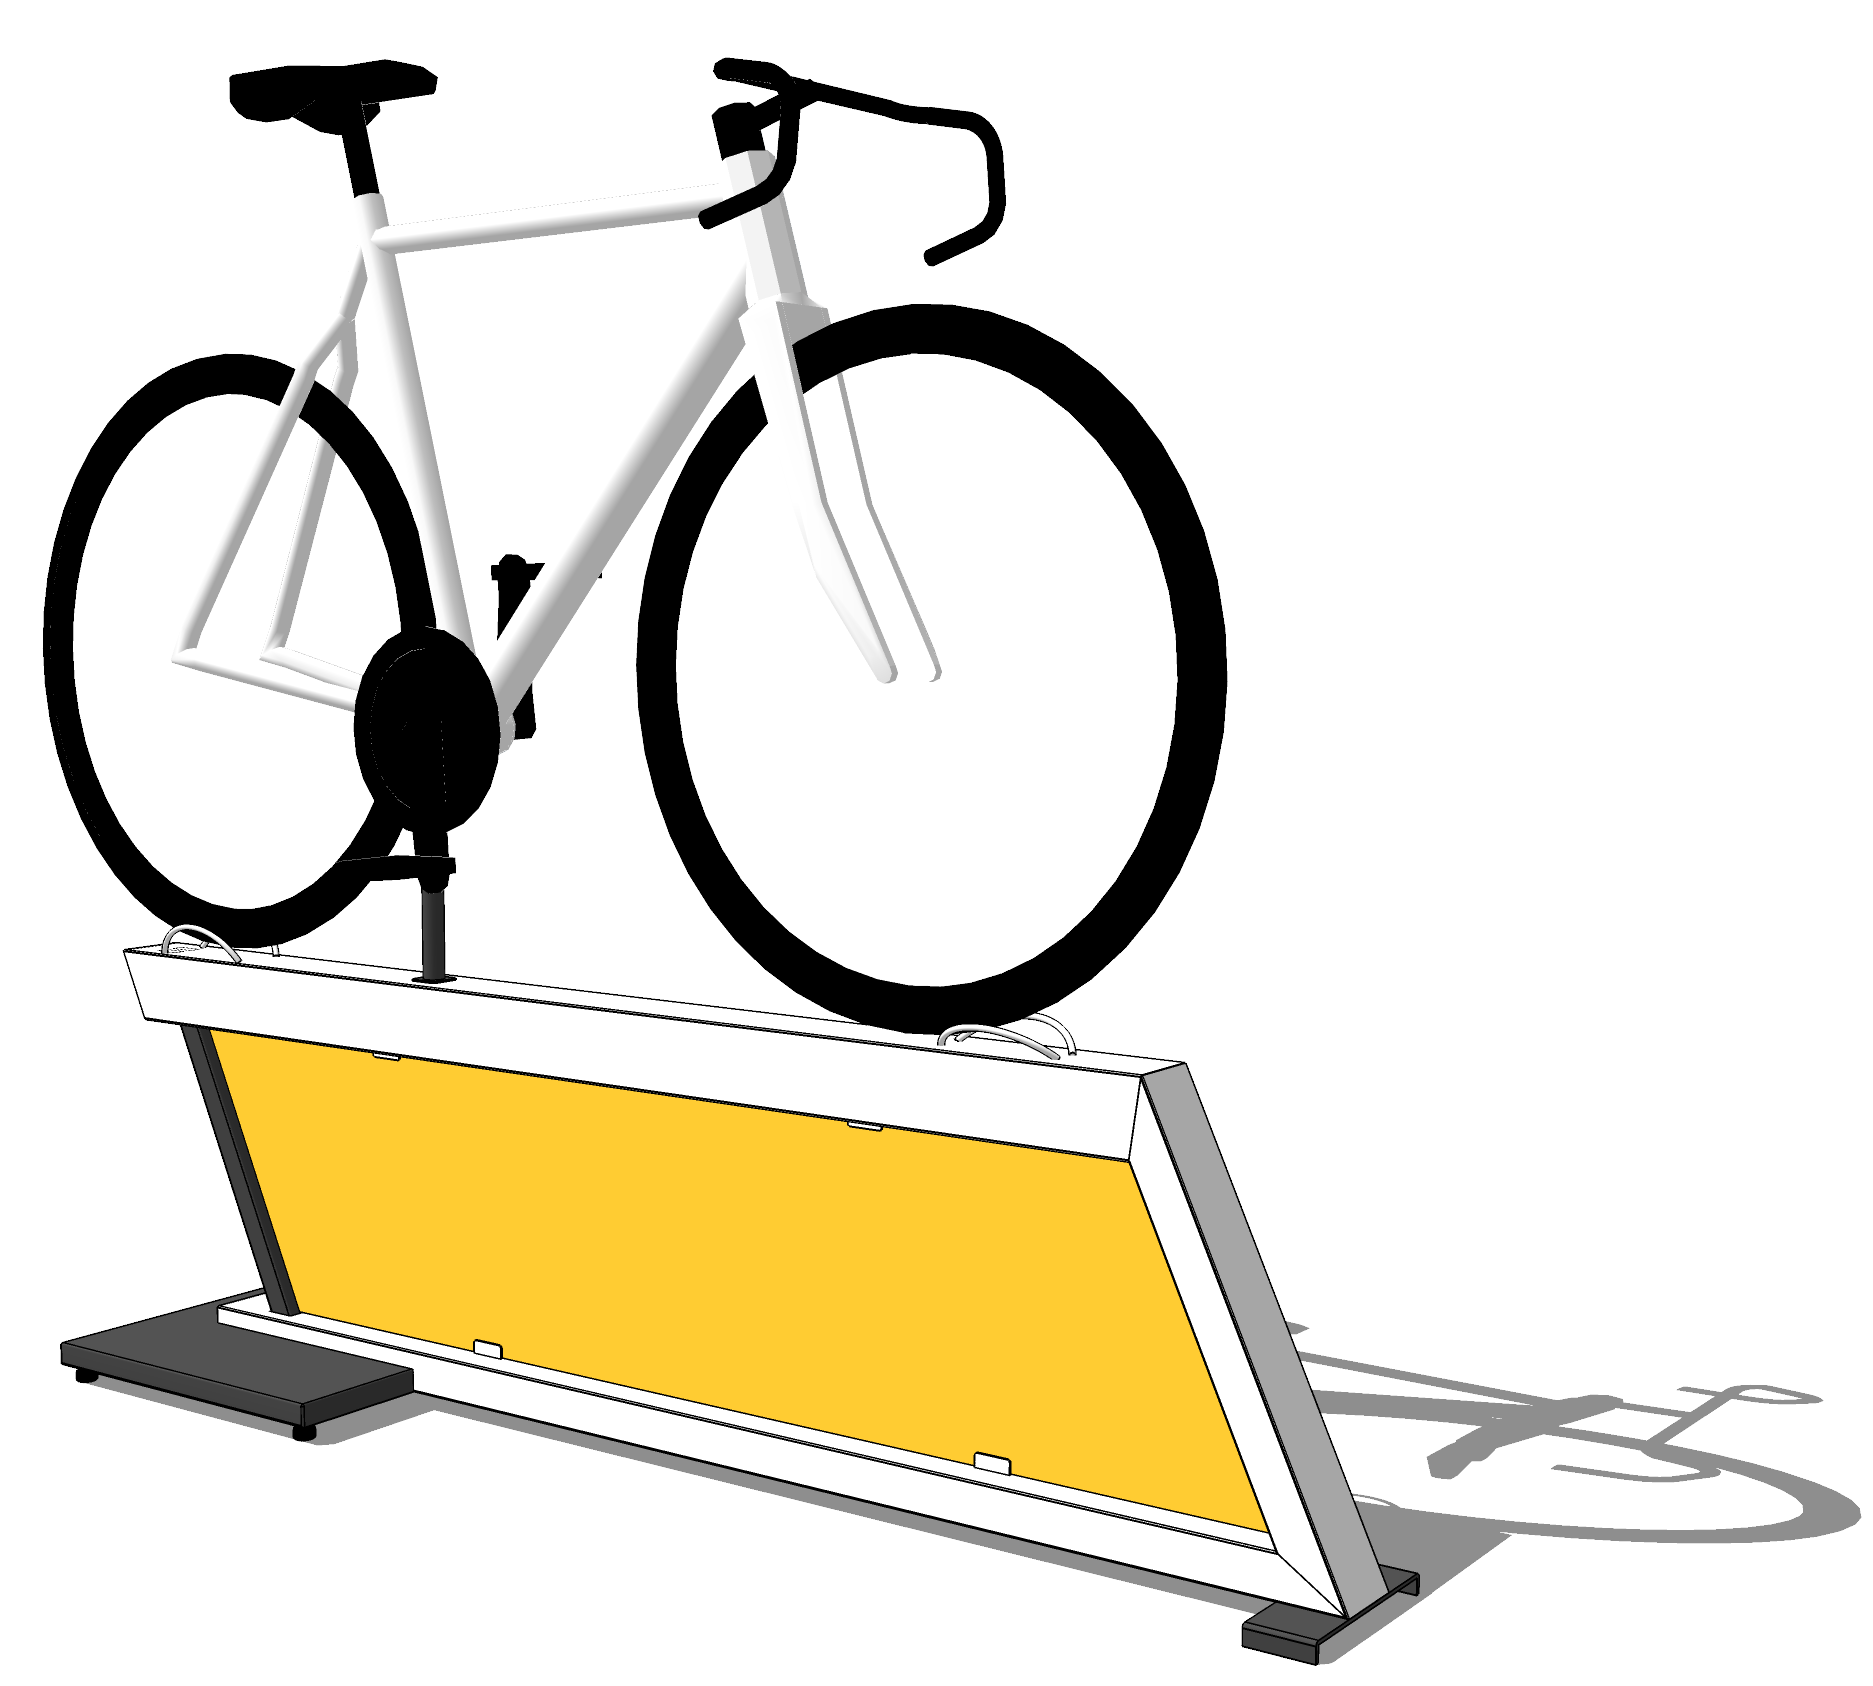 HEROBASE - Our Hero Base is fresh-looking, modern, and offers 360 degree visibility and is compatible with almost every bike on the market. With the option of holding customized graphics, this is the perfect stand for displaying feature bikes within your store.